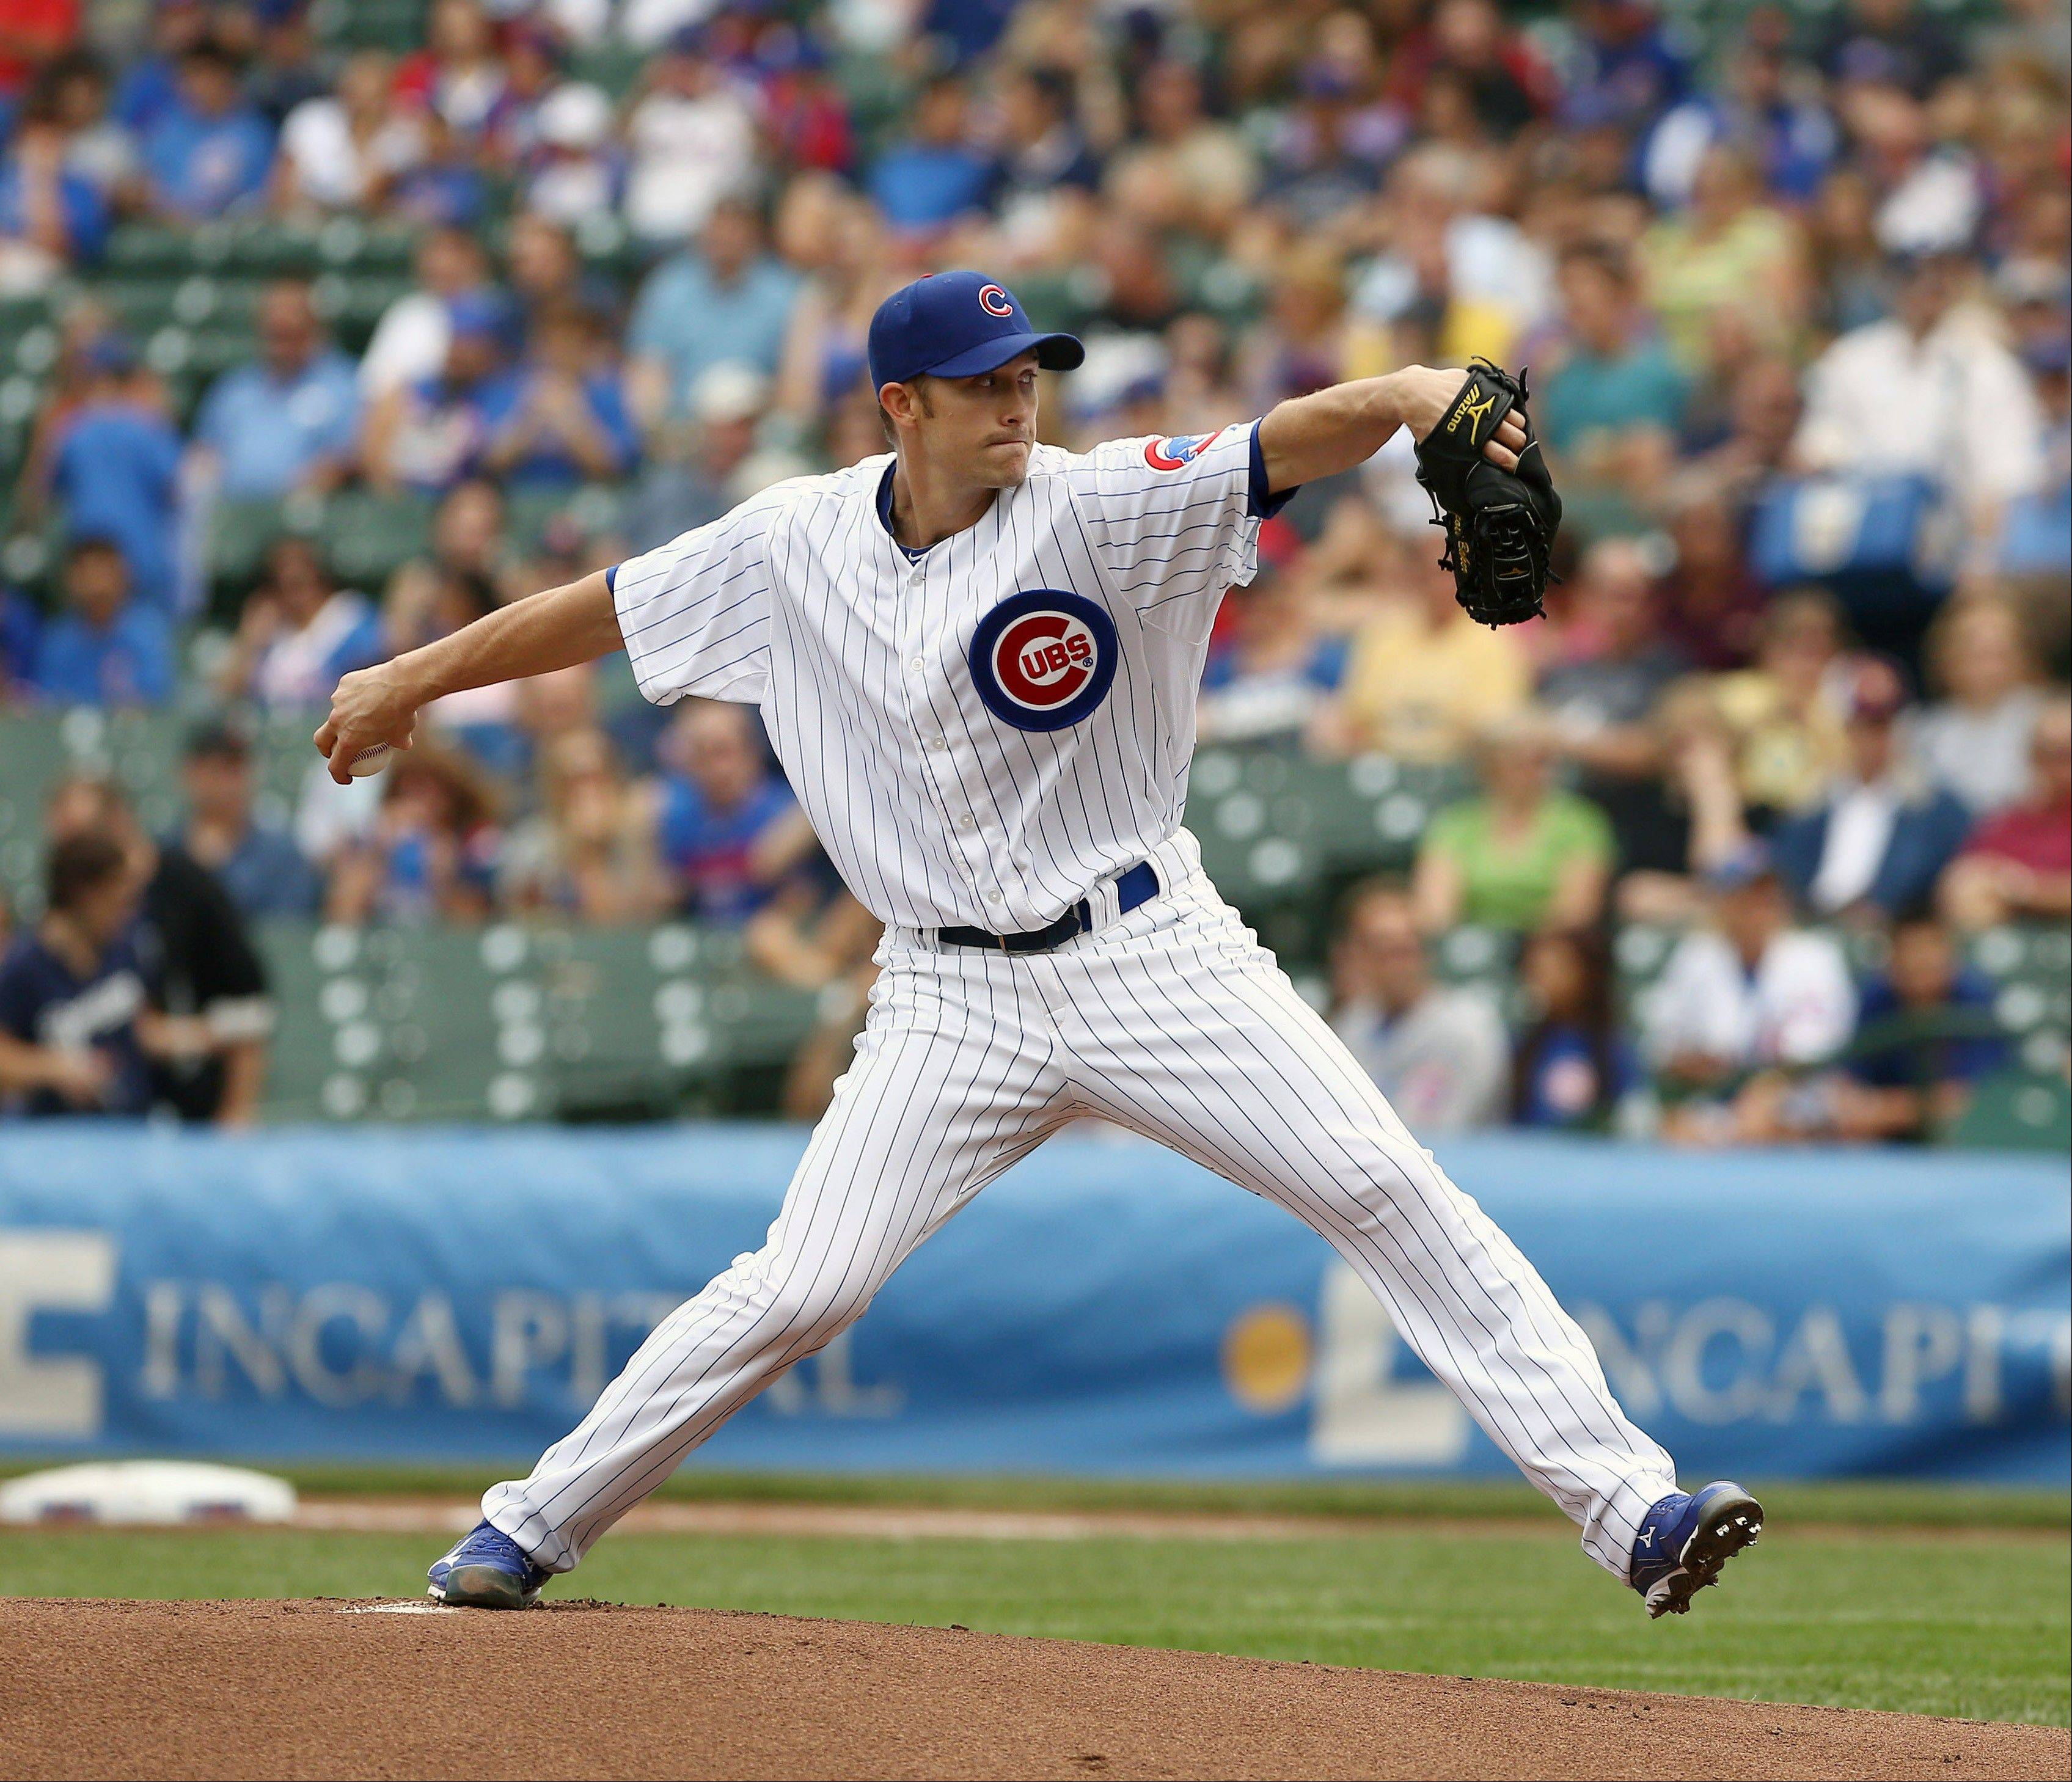 Starting pitcher Scott Baker made his Cubs debut Sunday, going 5 shutout innings and allowing only 2 hits against the Brewers.